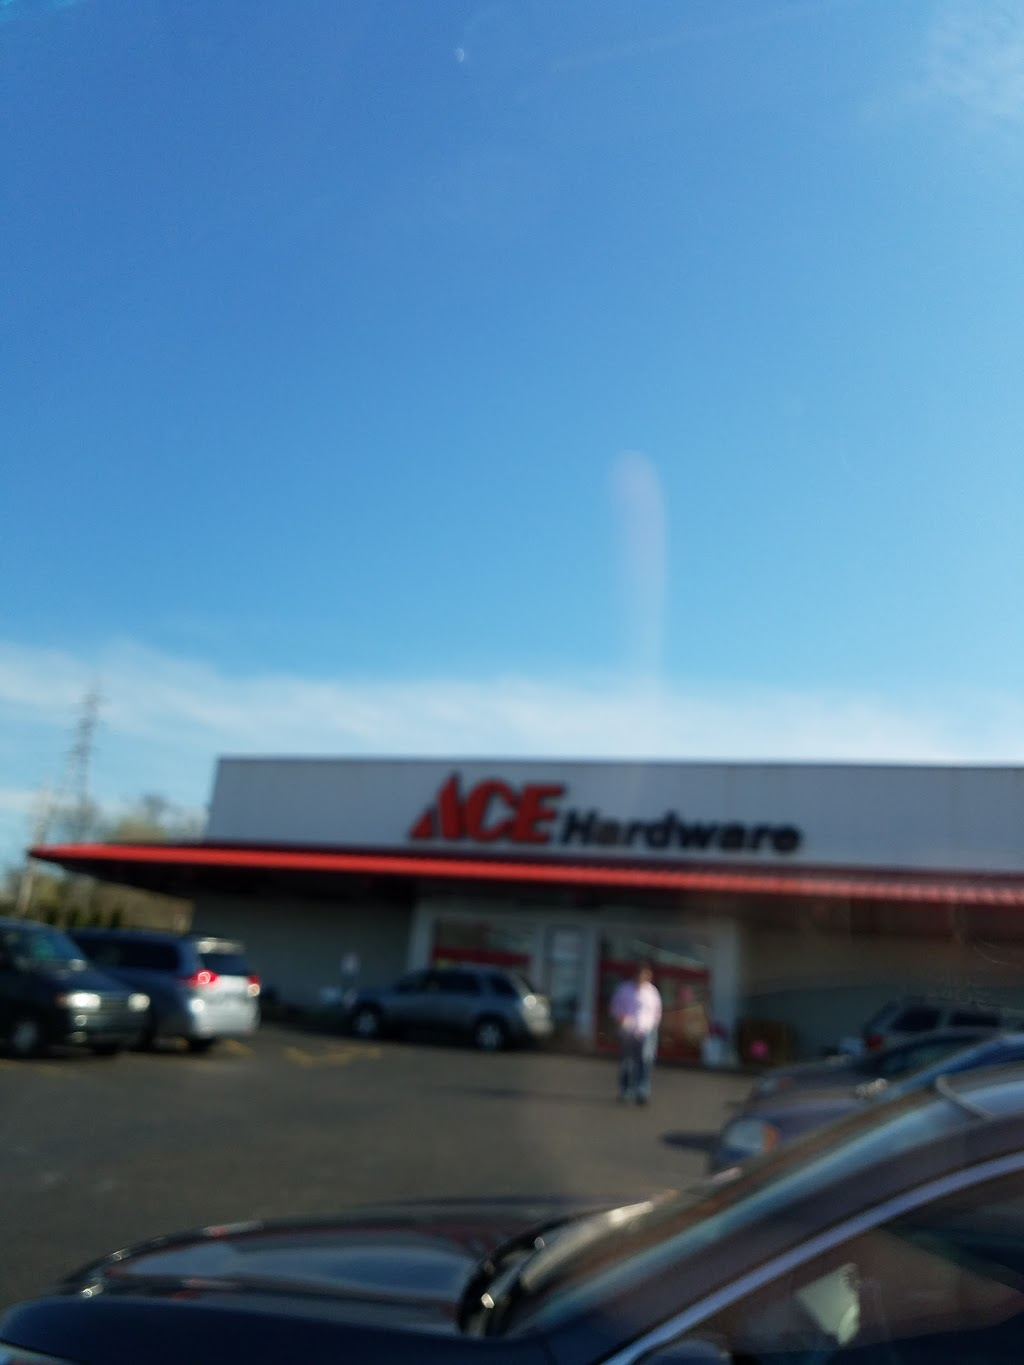 Ace Hardware - hardware store  | Photo 5 of 6 | Address: 2360 Niles Rd, St Joseph, MI 49085, USA | Phone: (269) 429-1504